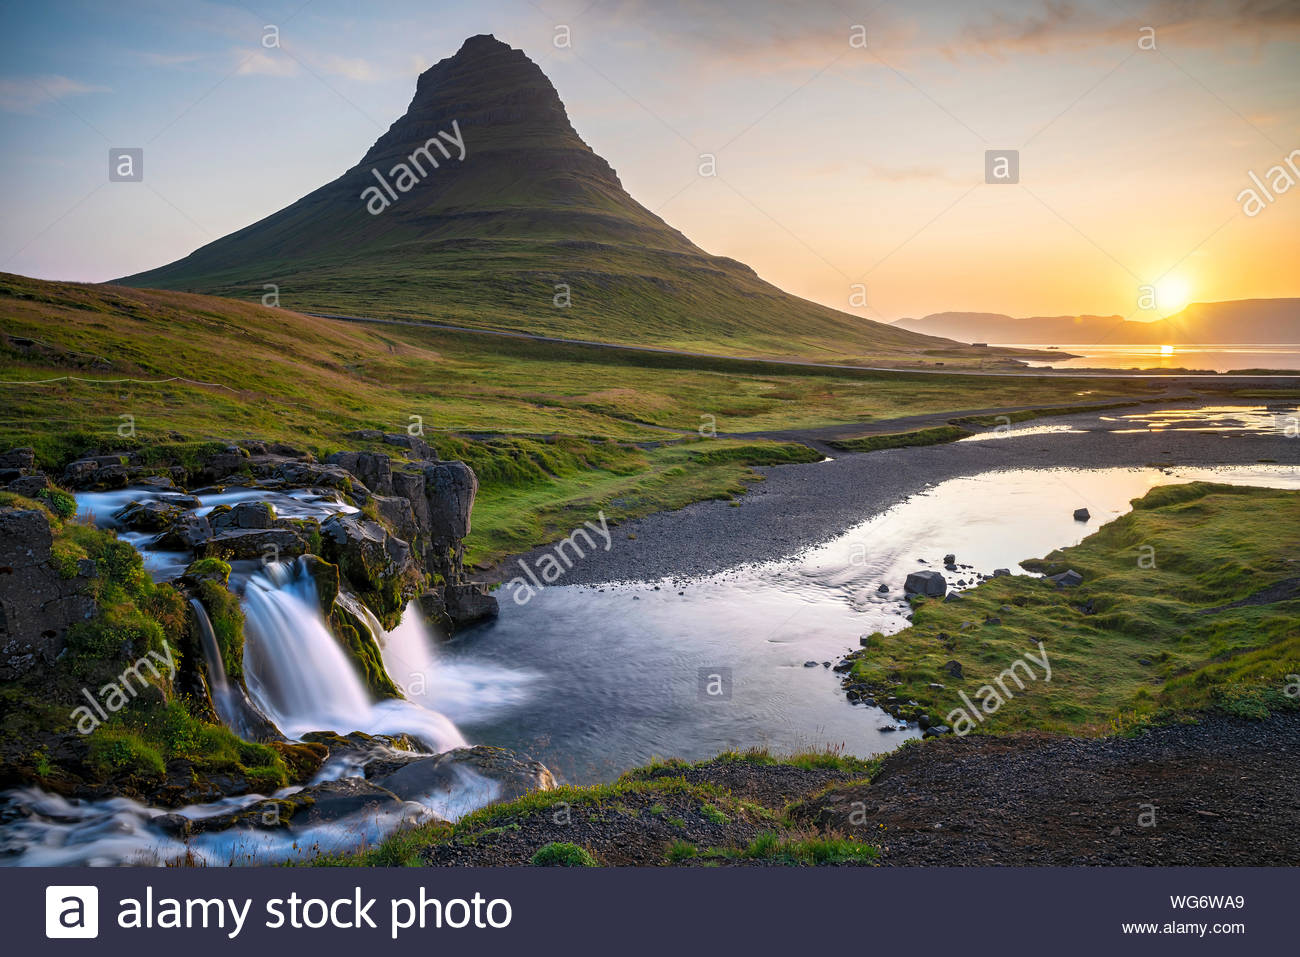 iceland-kirkjufell-mountain-and-kirkjufellfoss-falls-in-snfellsnes-peninsula-near-the-town-of-grundarfjrur-WG6WA9.jpg